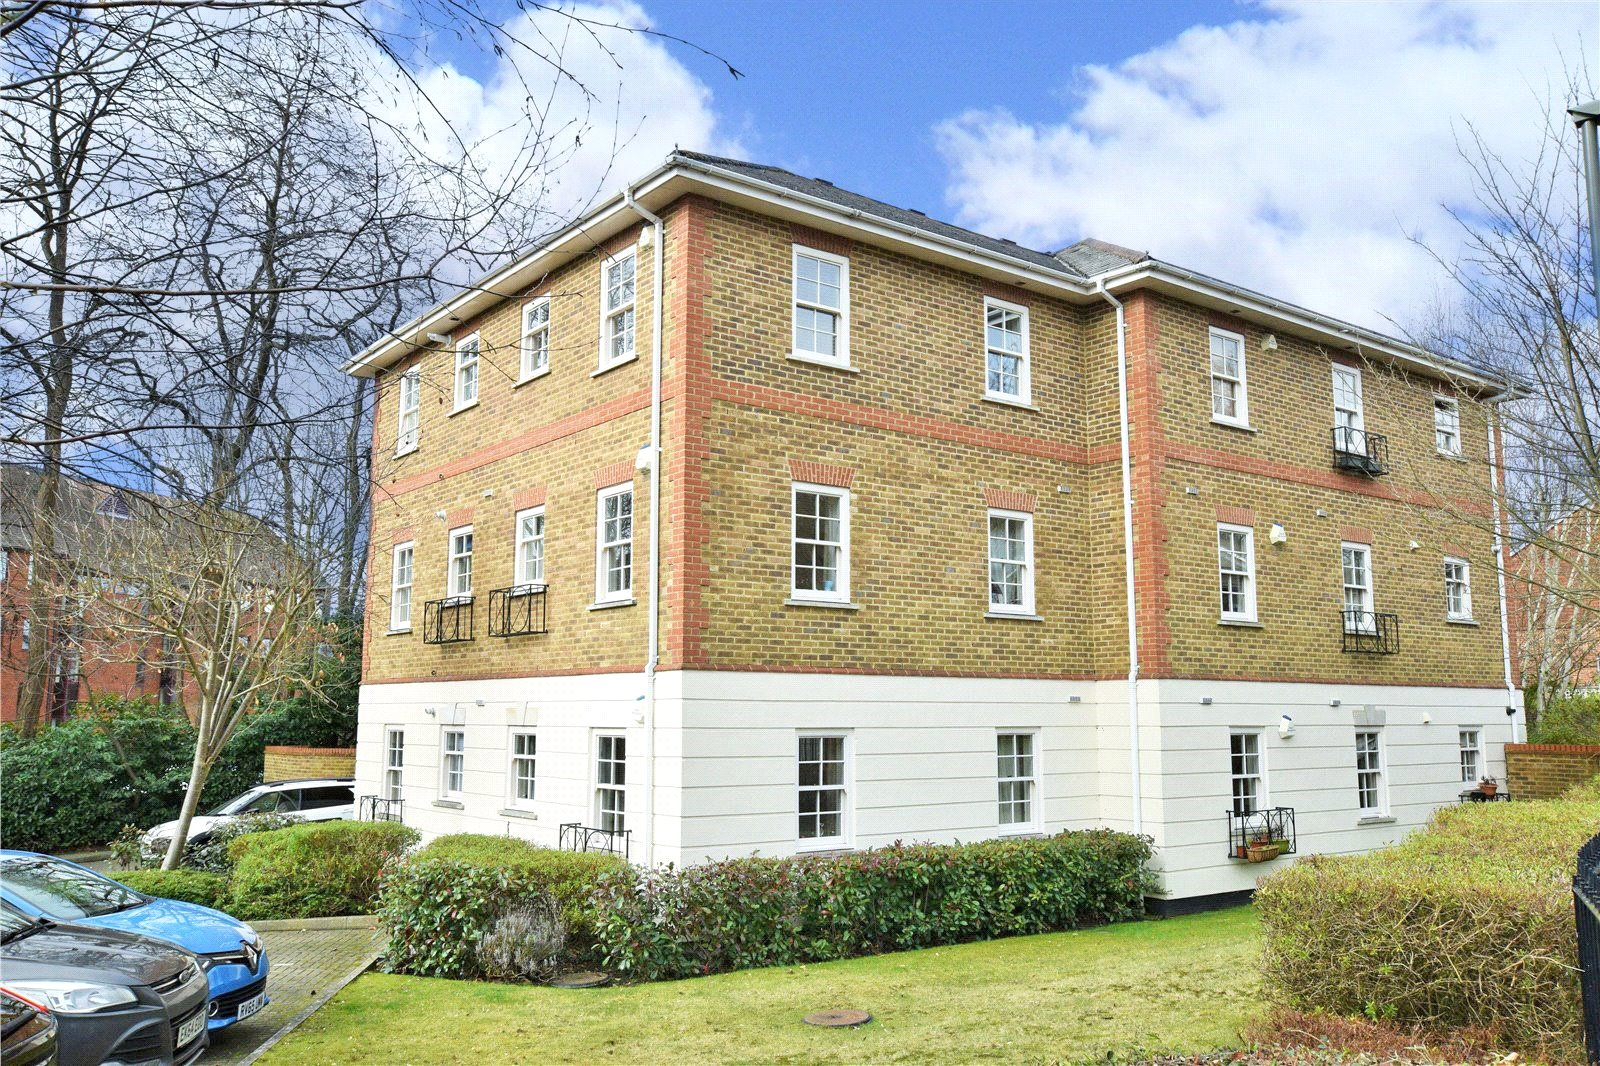 2 Bedrooms Apartment Flat for sale in Townside Place, Camberley, Surrey, GU15